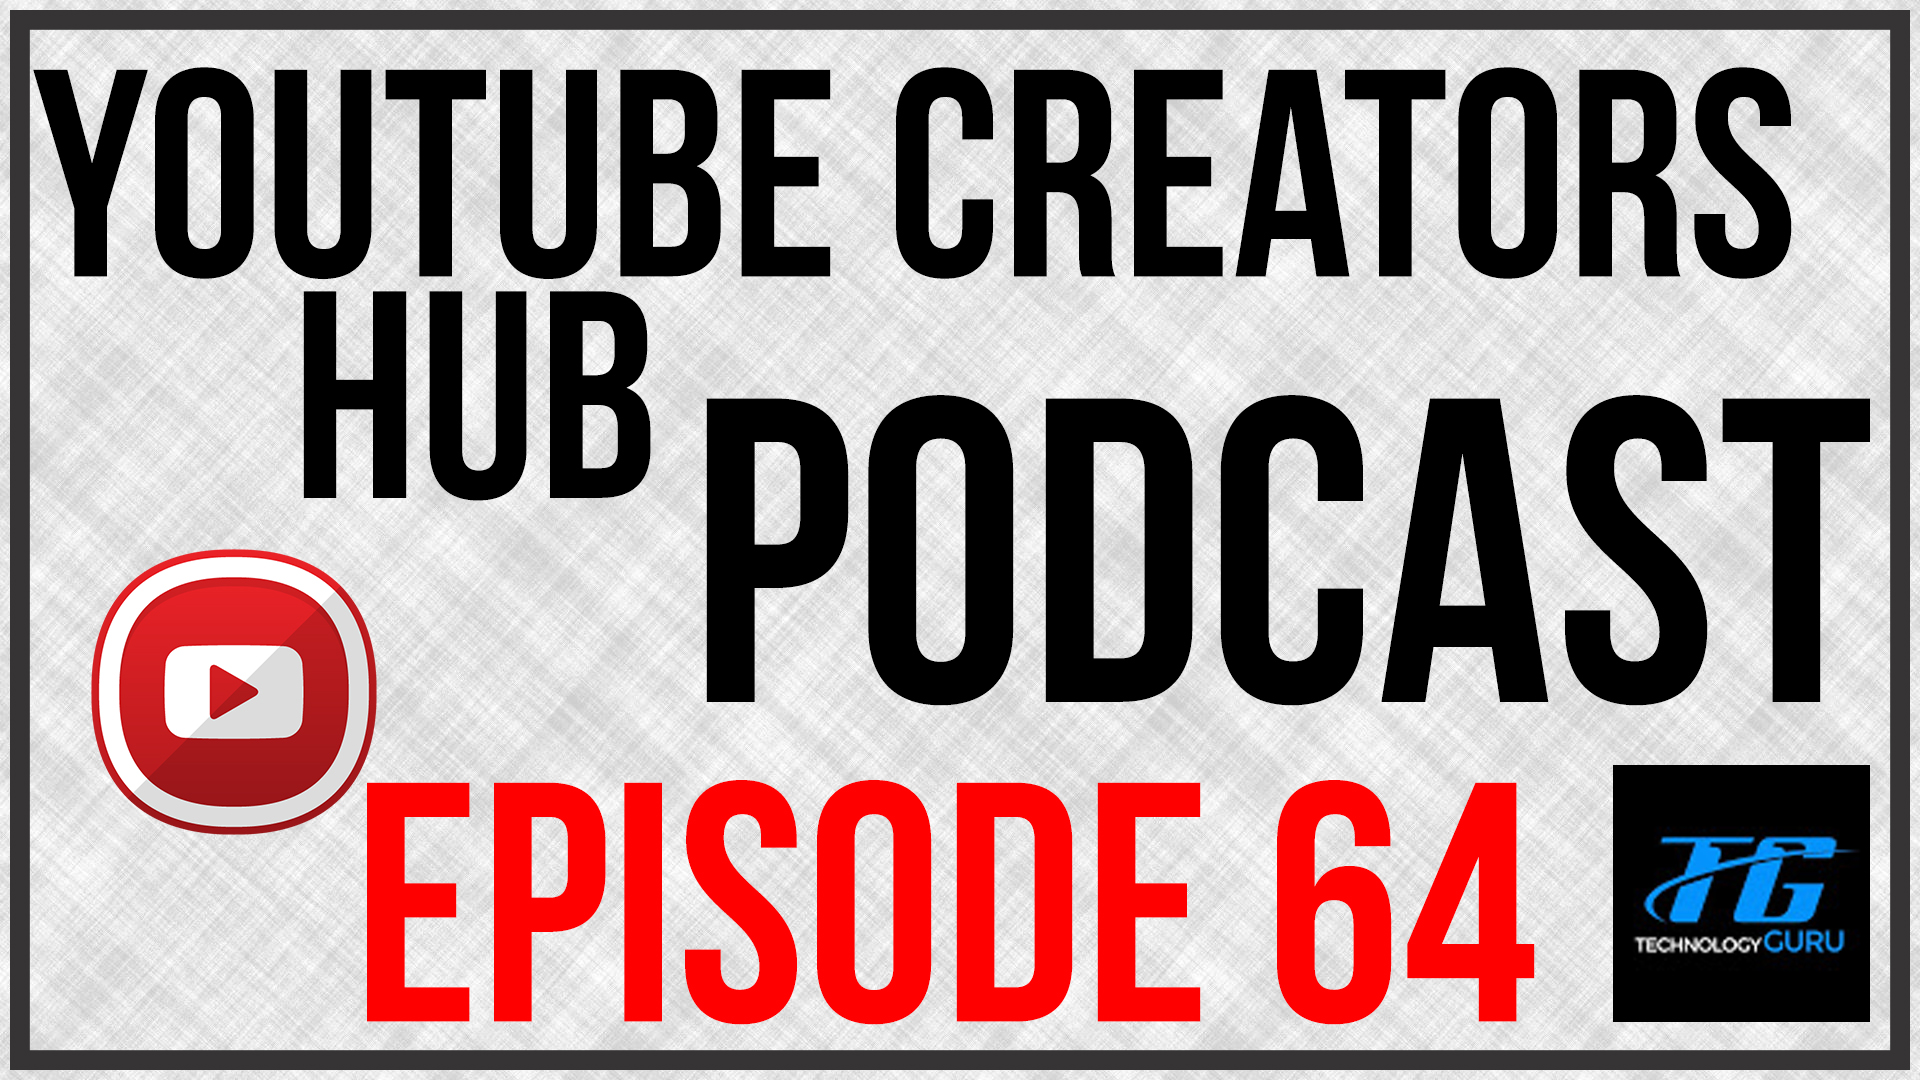 YouTube Creators Hub Podcast Episode 64